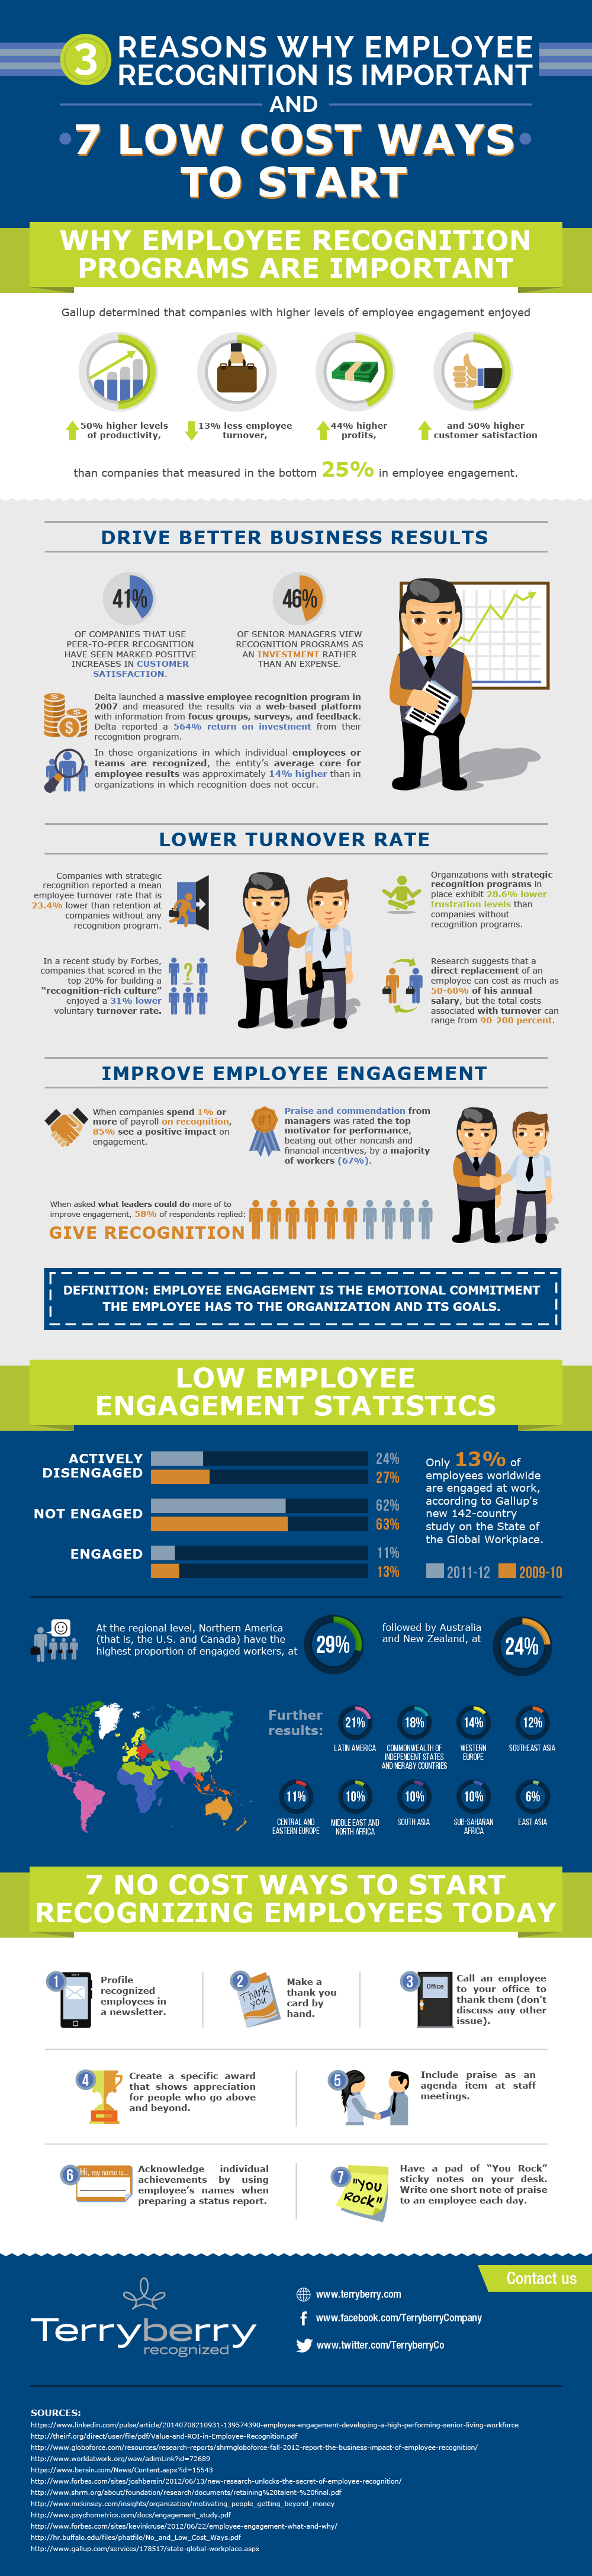 Employee_recognition_infographic